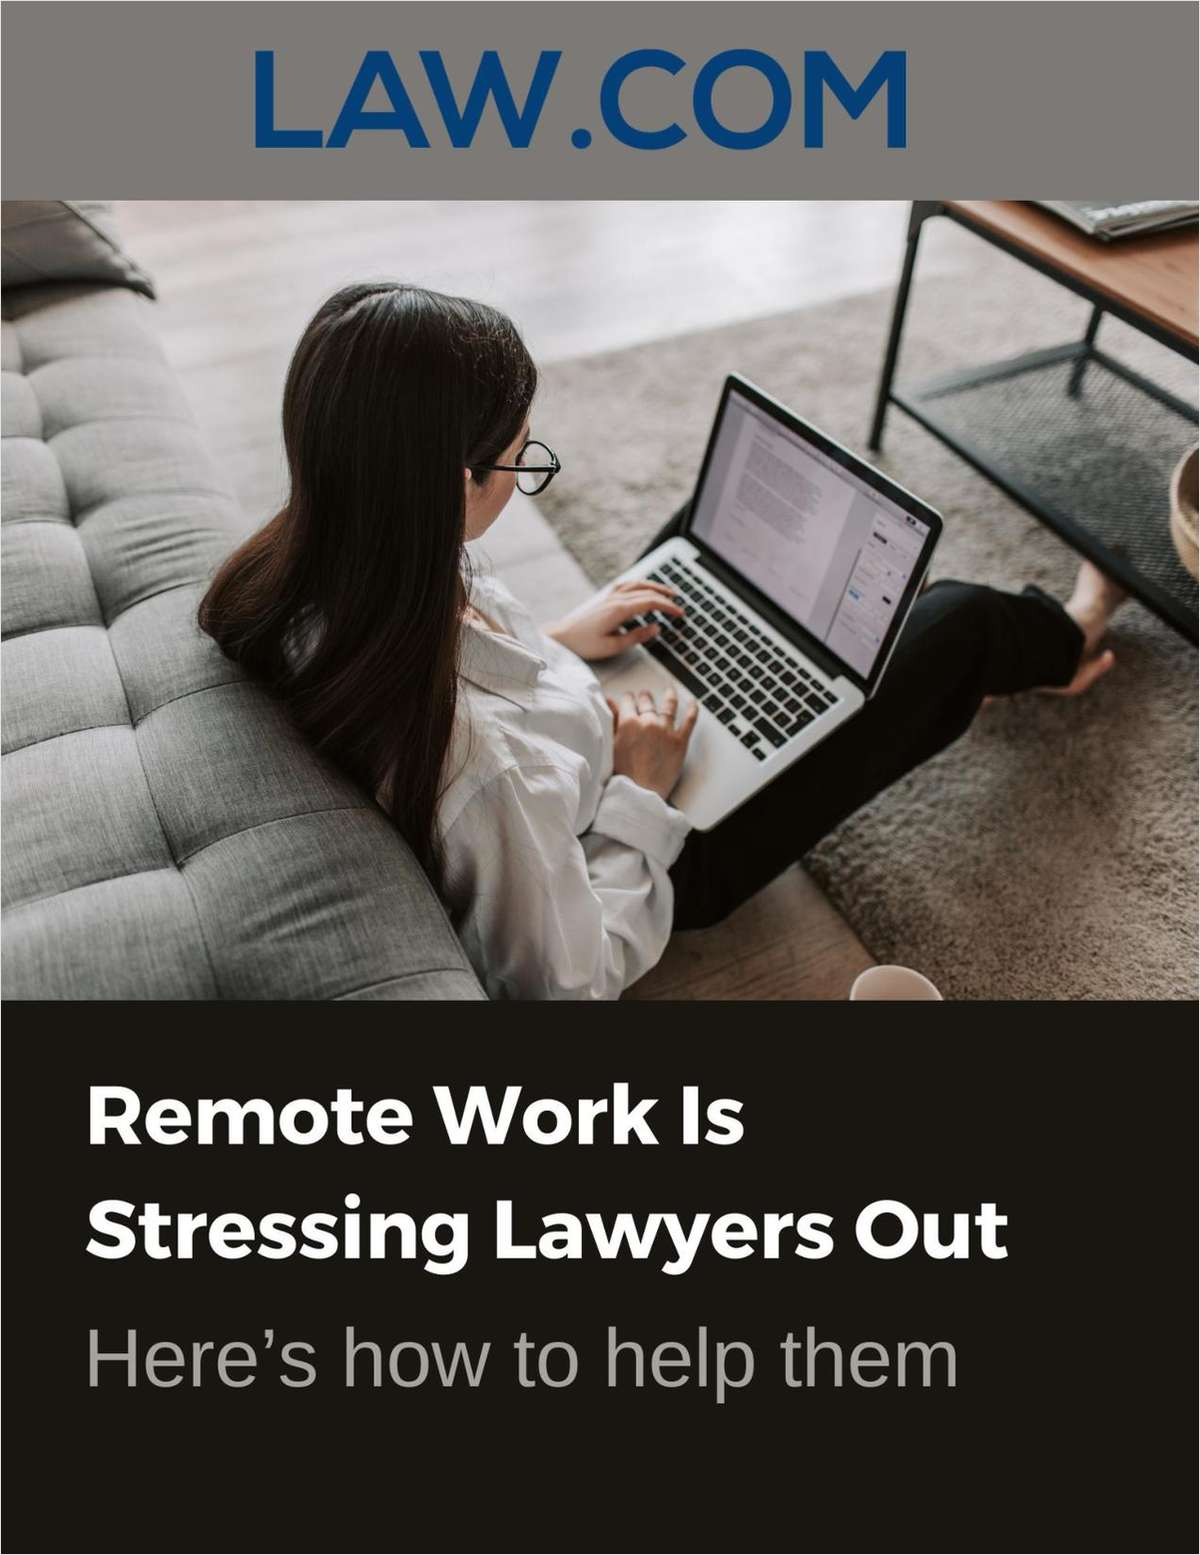 Remote Work Is Stressing Lawyers Out. Here's How to Help Them